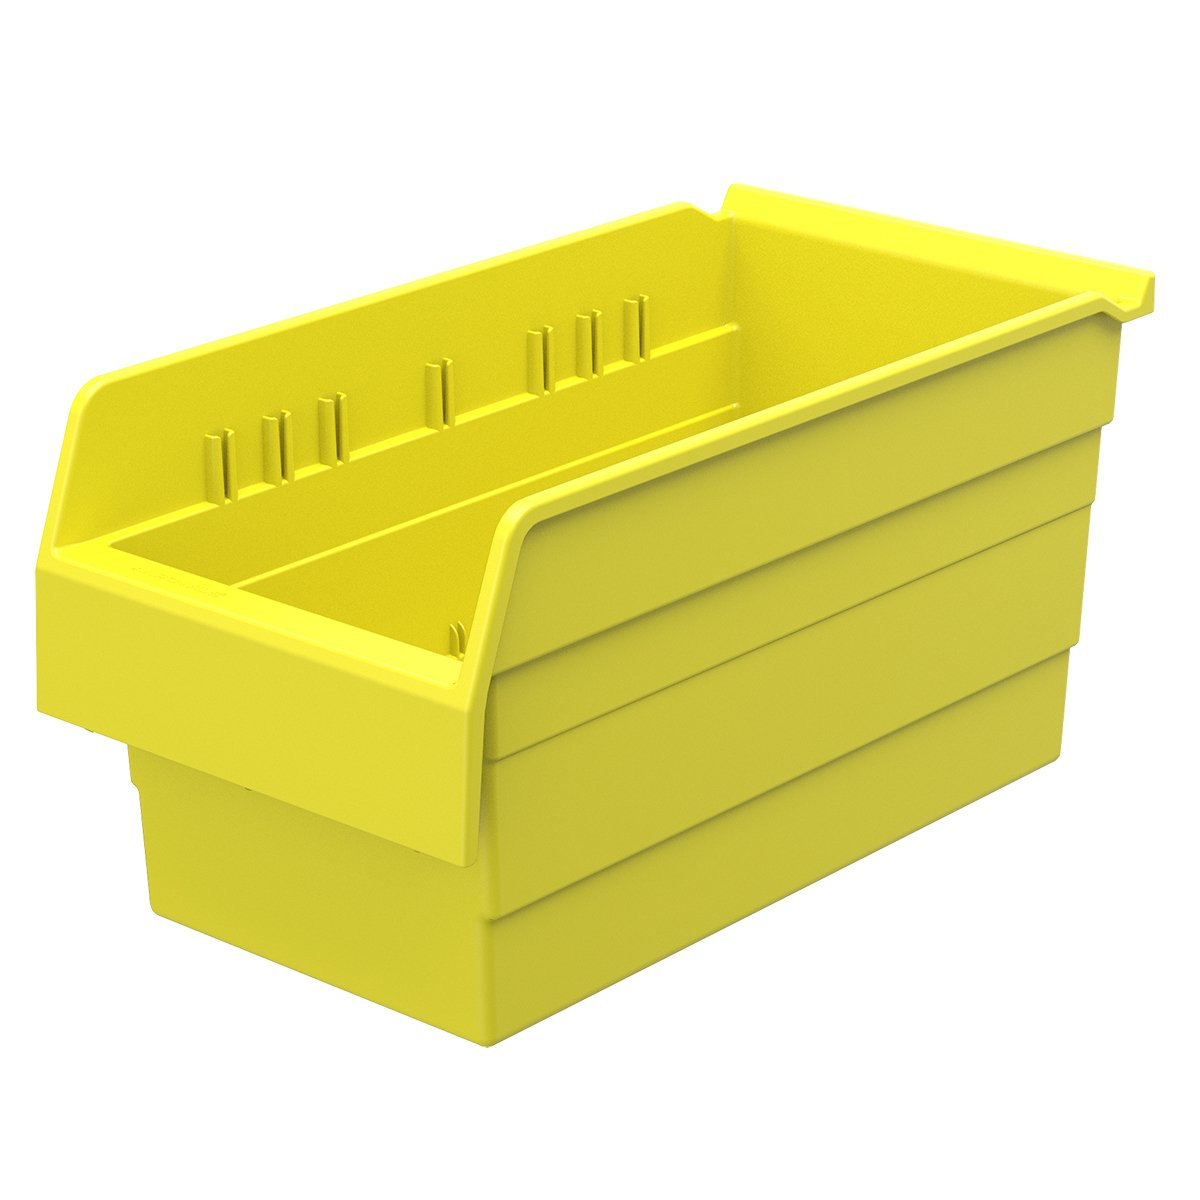 Akro-Mils 30886 ShelfMax 8 Plastic Nesting Shelf Bin Box, 16-Inch x 8-Inch x 8-Inch, Yellow, 8-Pack